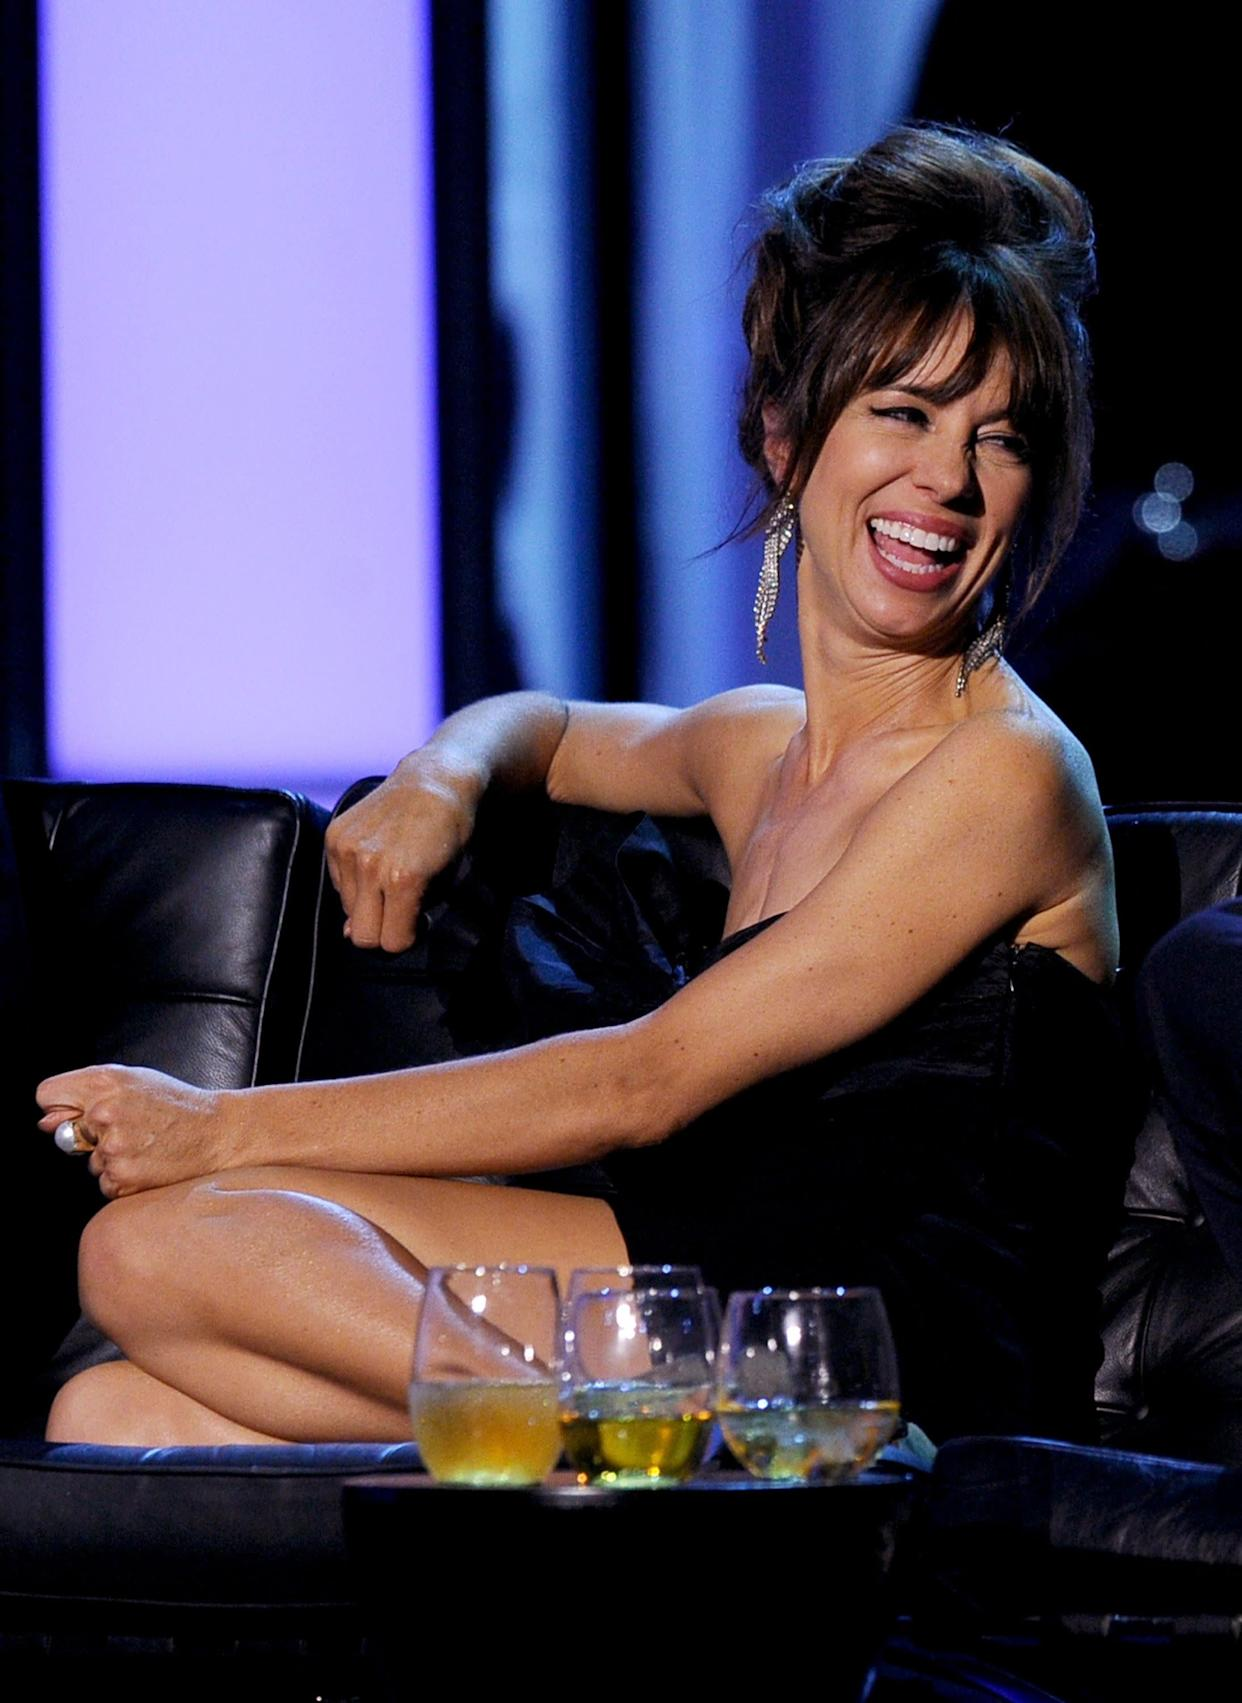 CULVER CITY, CA - AUGUST 25: Actress Natasha Leggero onstage during The Comedy Central Roast of James Franco at Culver Studios on August 25, 2013 in Culver City, California. The Comedy Central Roast Of James Franco will air on September 2 at 10:00 p.m. ET/PT. (Photo by Kevin Winter/Getty Images for Comedy Central)